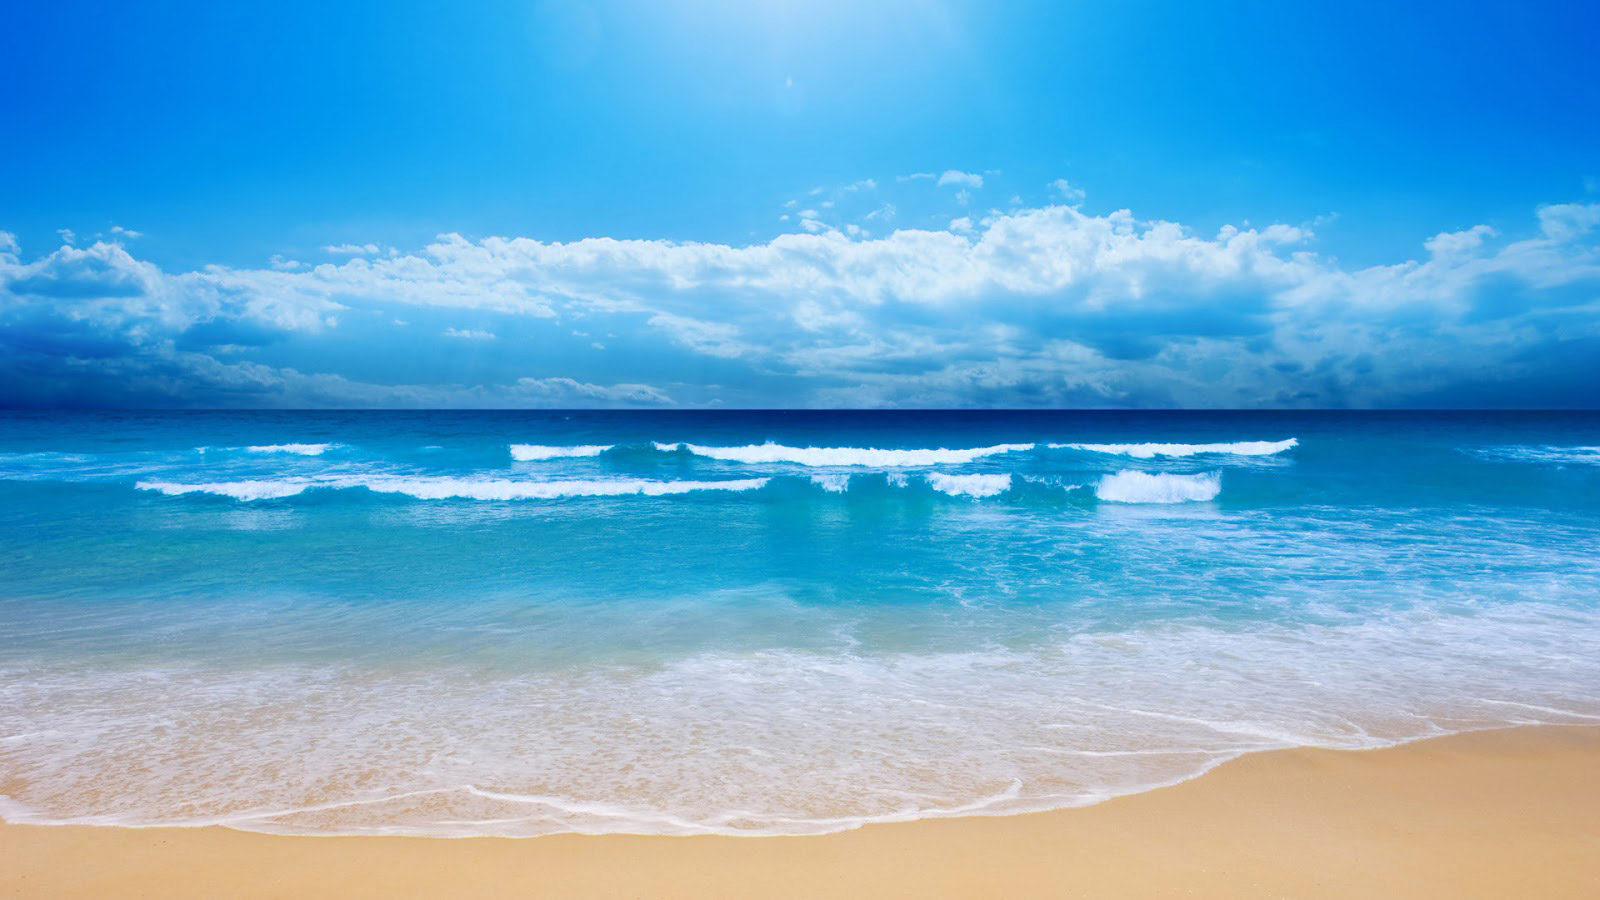 Beach-Wallpaper-Desktop-Background-11-1600×900